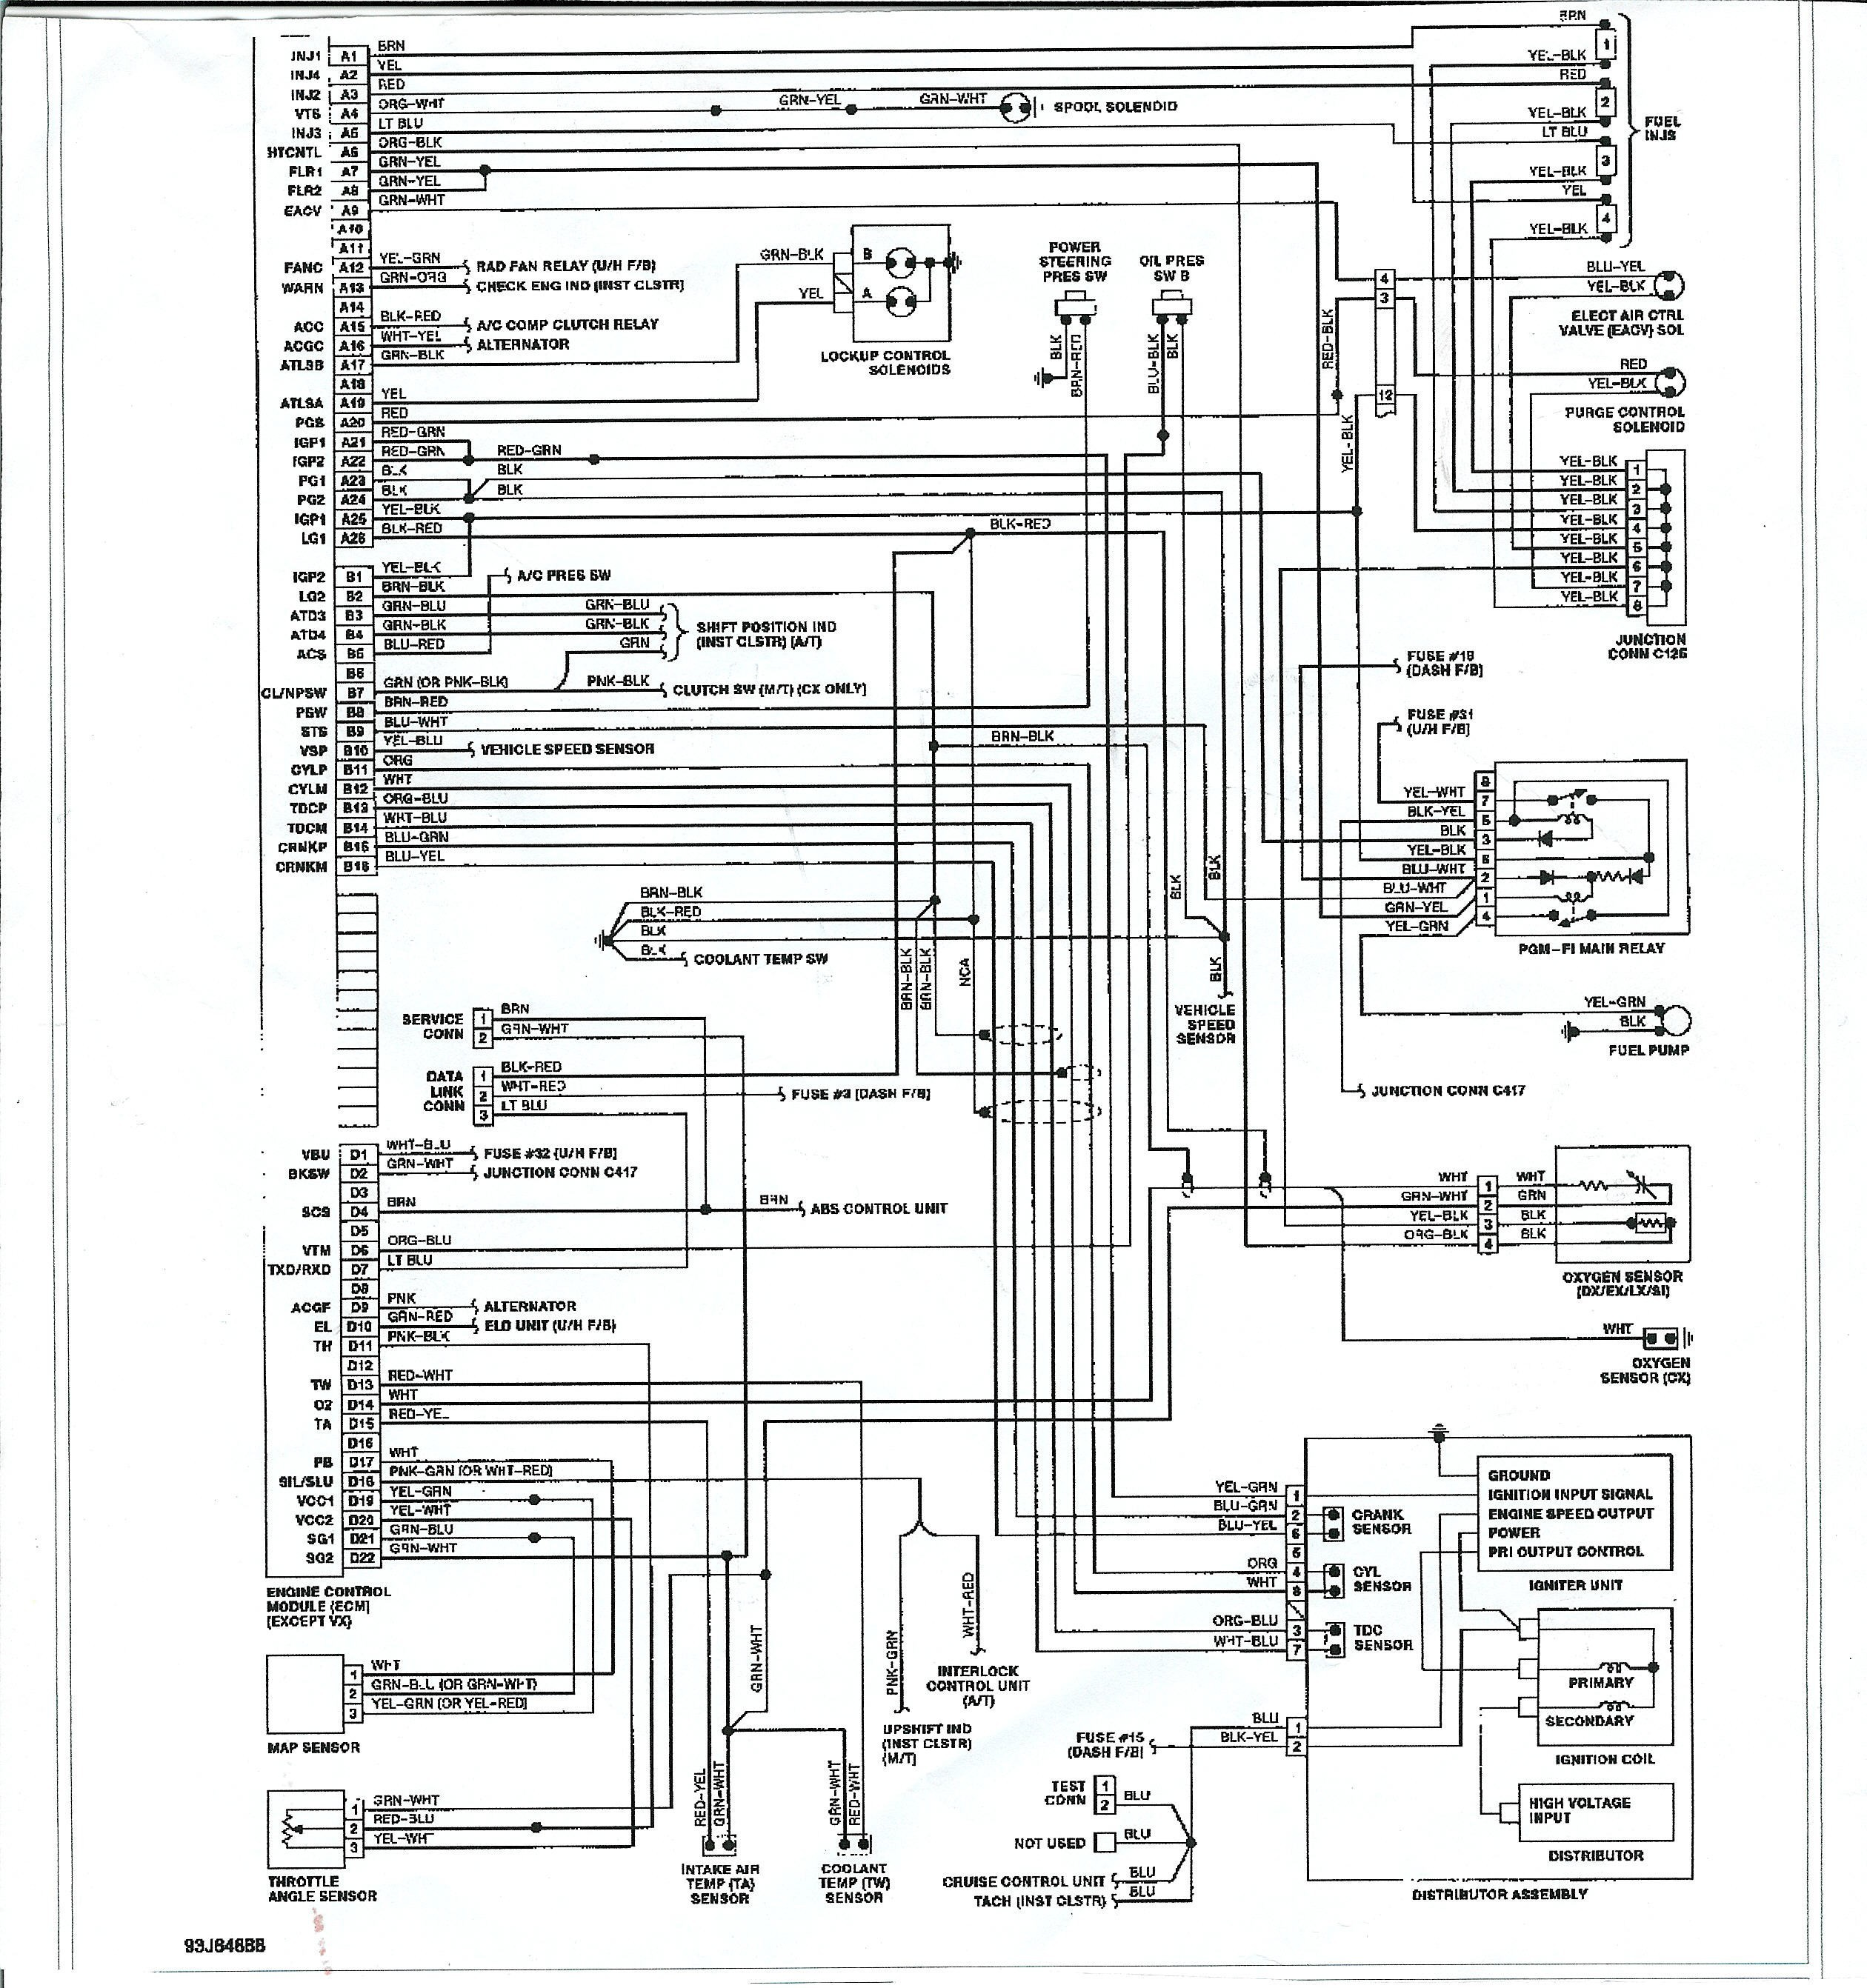 Wiring Diagram For 96 Honda Accord Lx